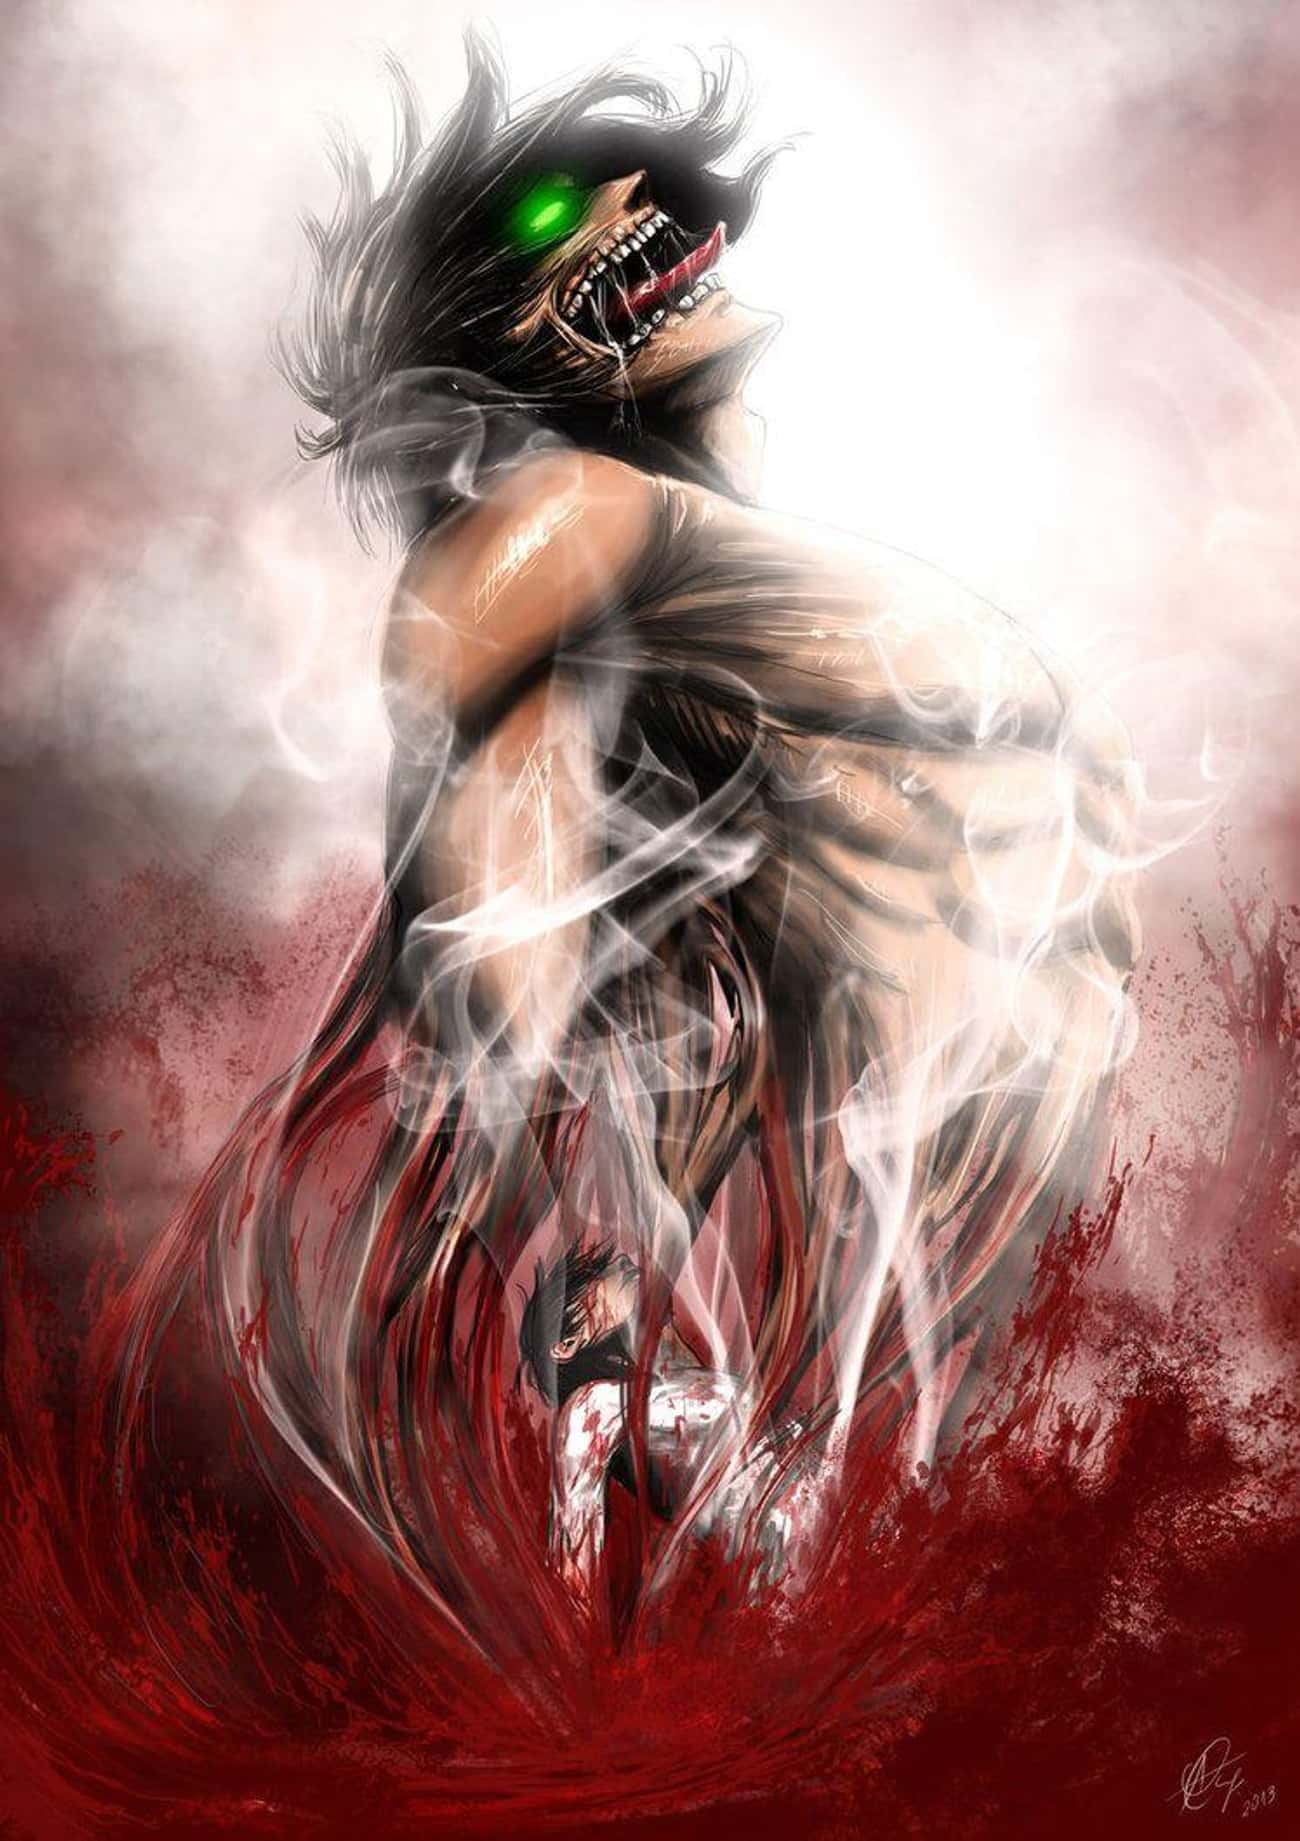 A Brutal Imagining of Eren&#39 is listed (or ranked) 1 on the list 22 Incredible Pieces of Attack on Titan Fan Art